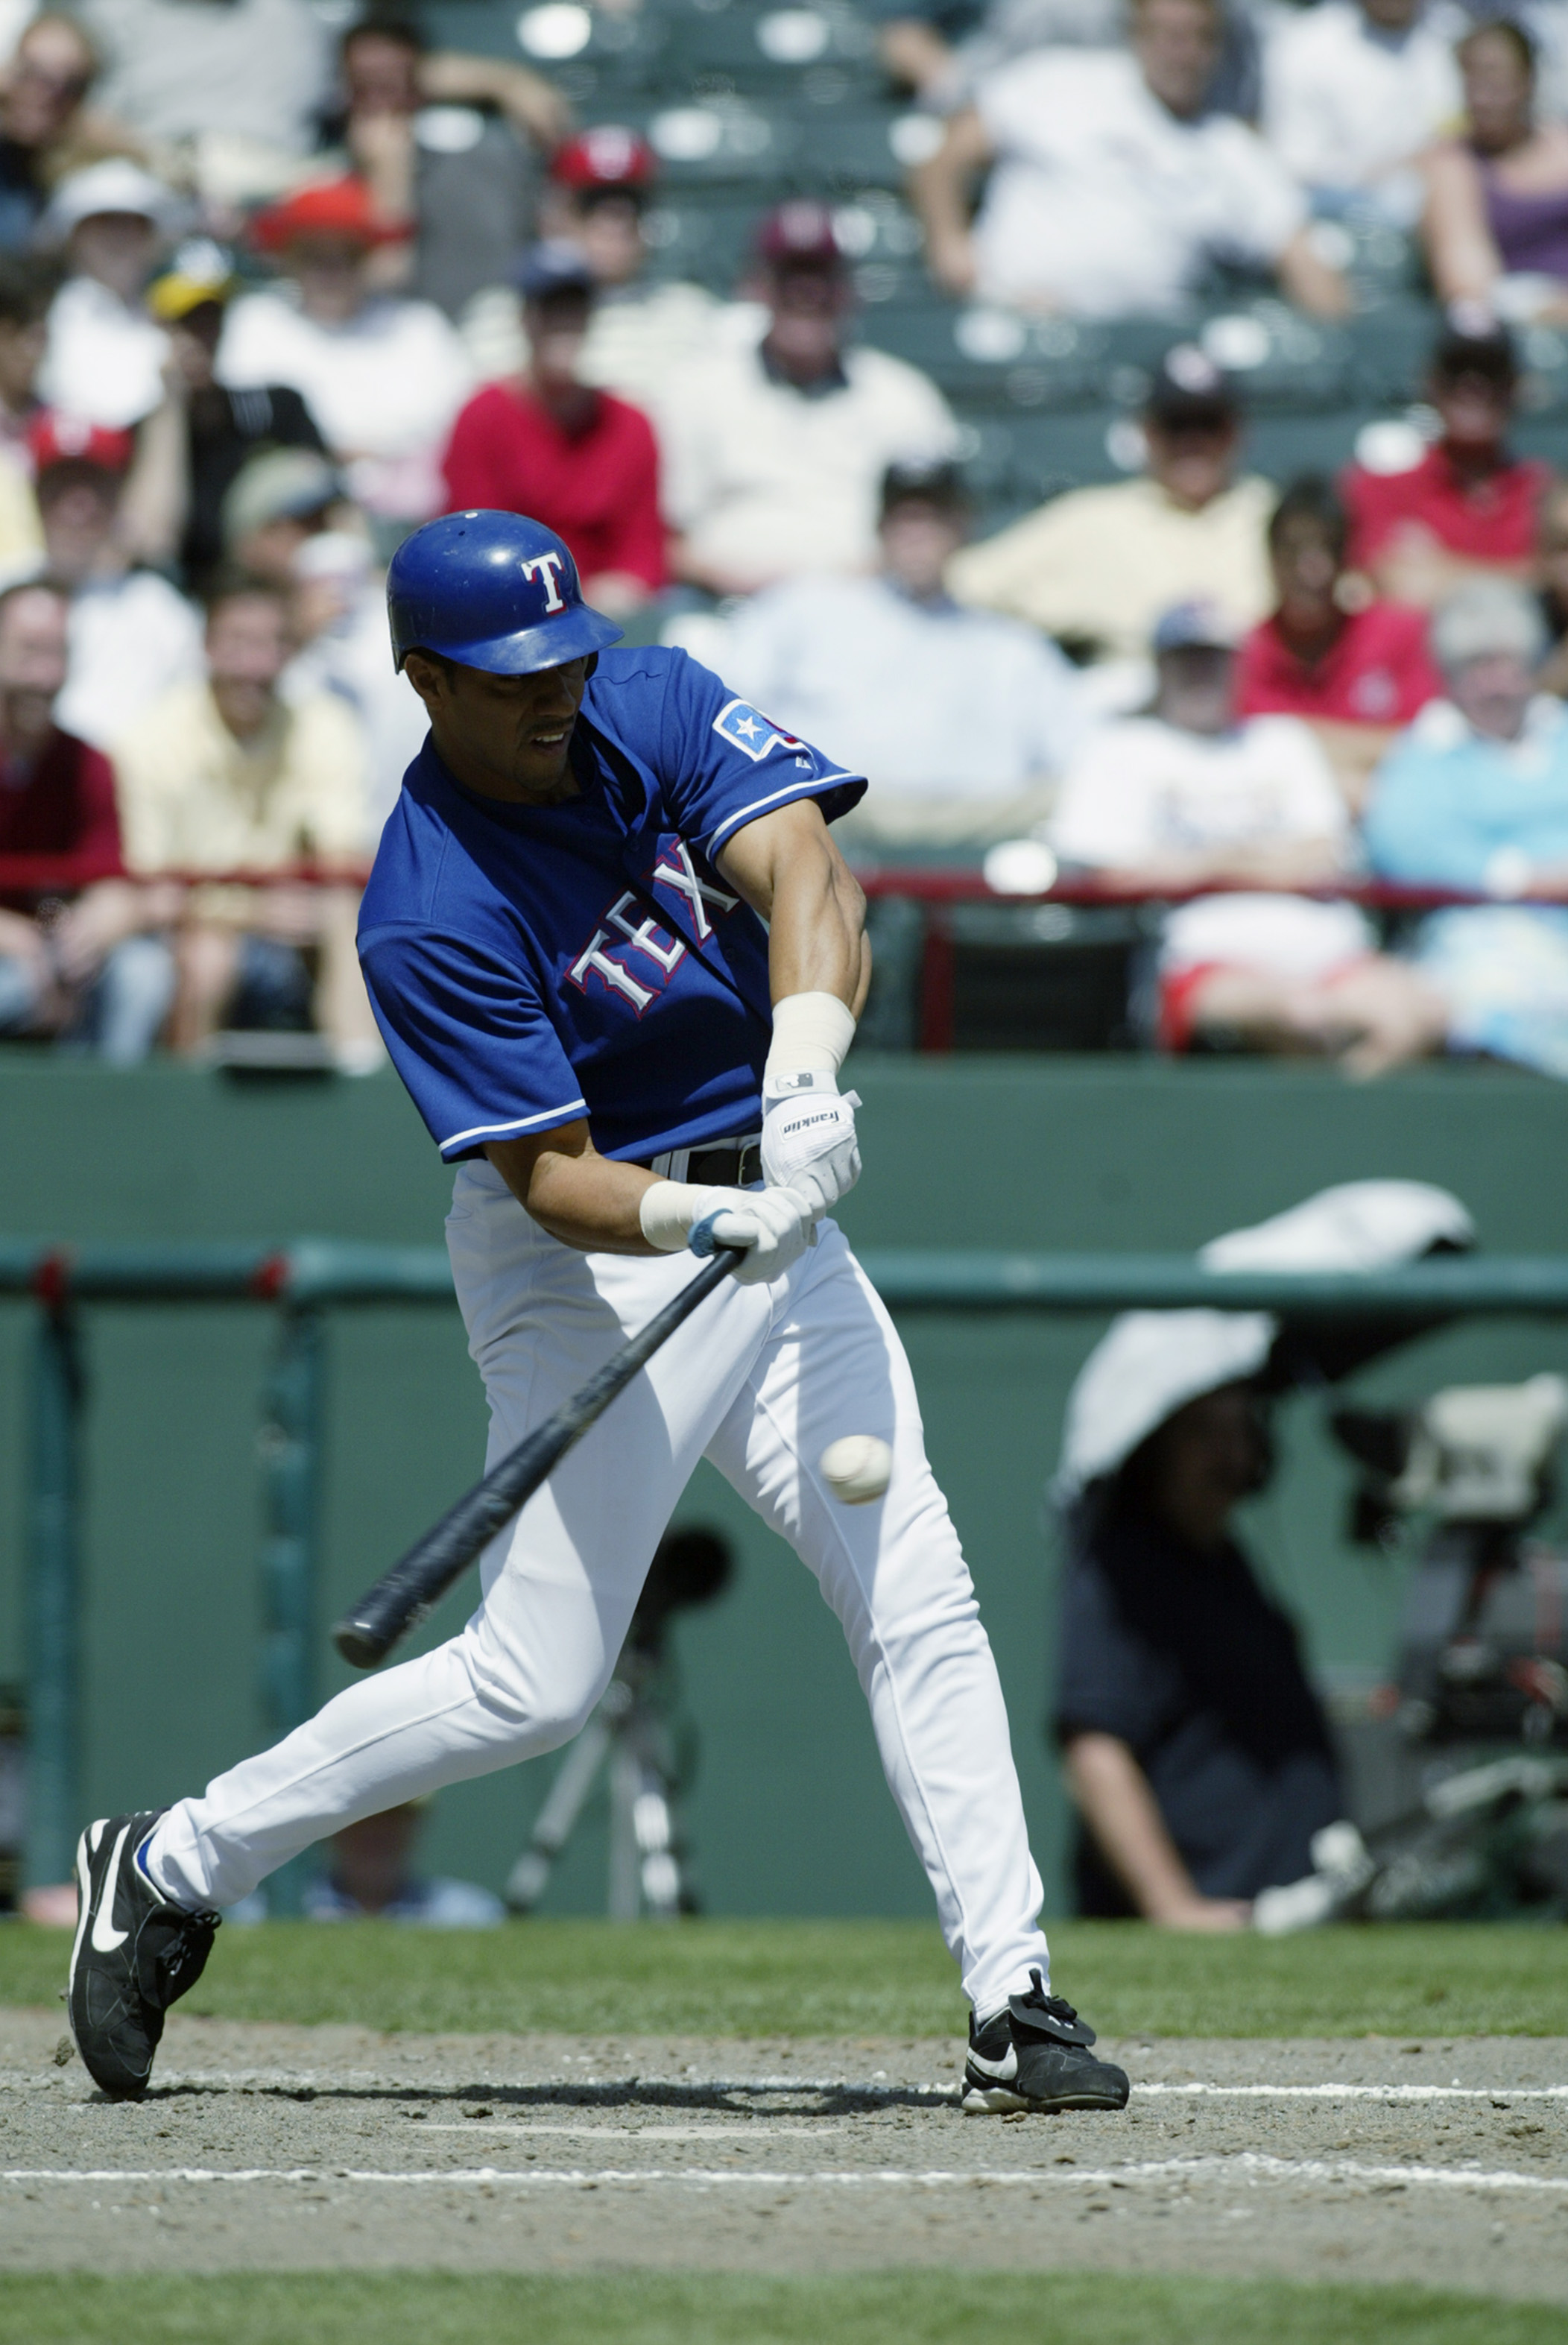 ARLINGTON, TX - APRIL 10:  Juan Gonzalez #19 of the Texas Rangers swings at a pitch during the game against the Oakland Athletics at the Ballpark in Arlington on April 10, 2003 in Arlington, Texas.  The Rangers defeated the A's 5-4.  (Photo by Ronald Mart